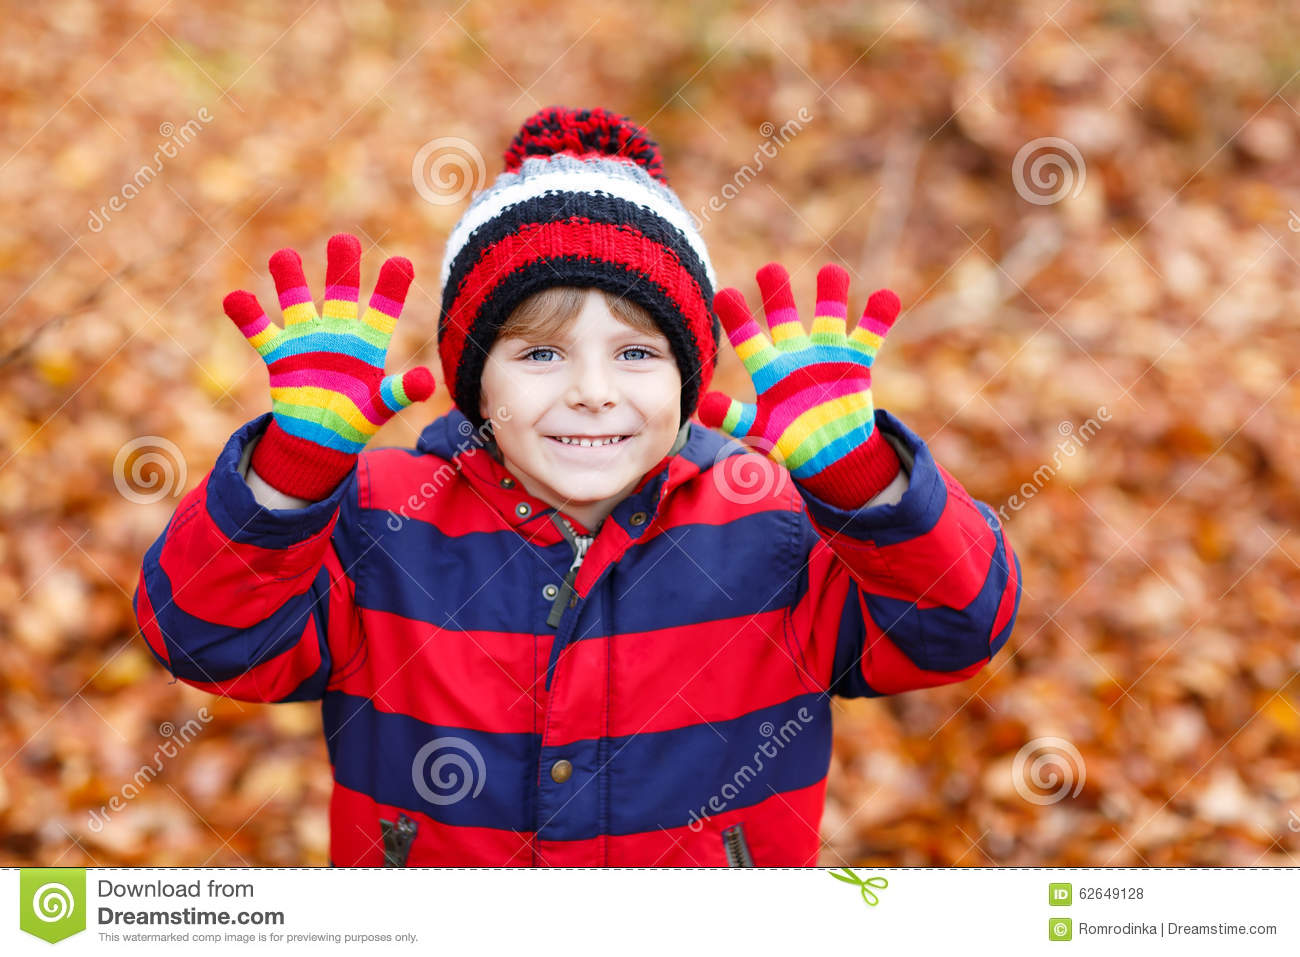 4dfcf0ad001 Funny child having fun in fall forest or park on cold day. With hat and  gloves